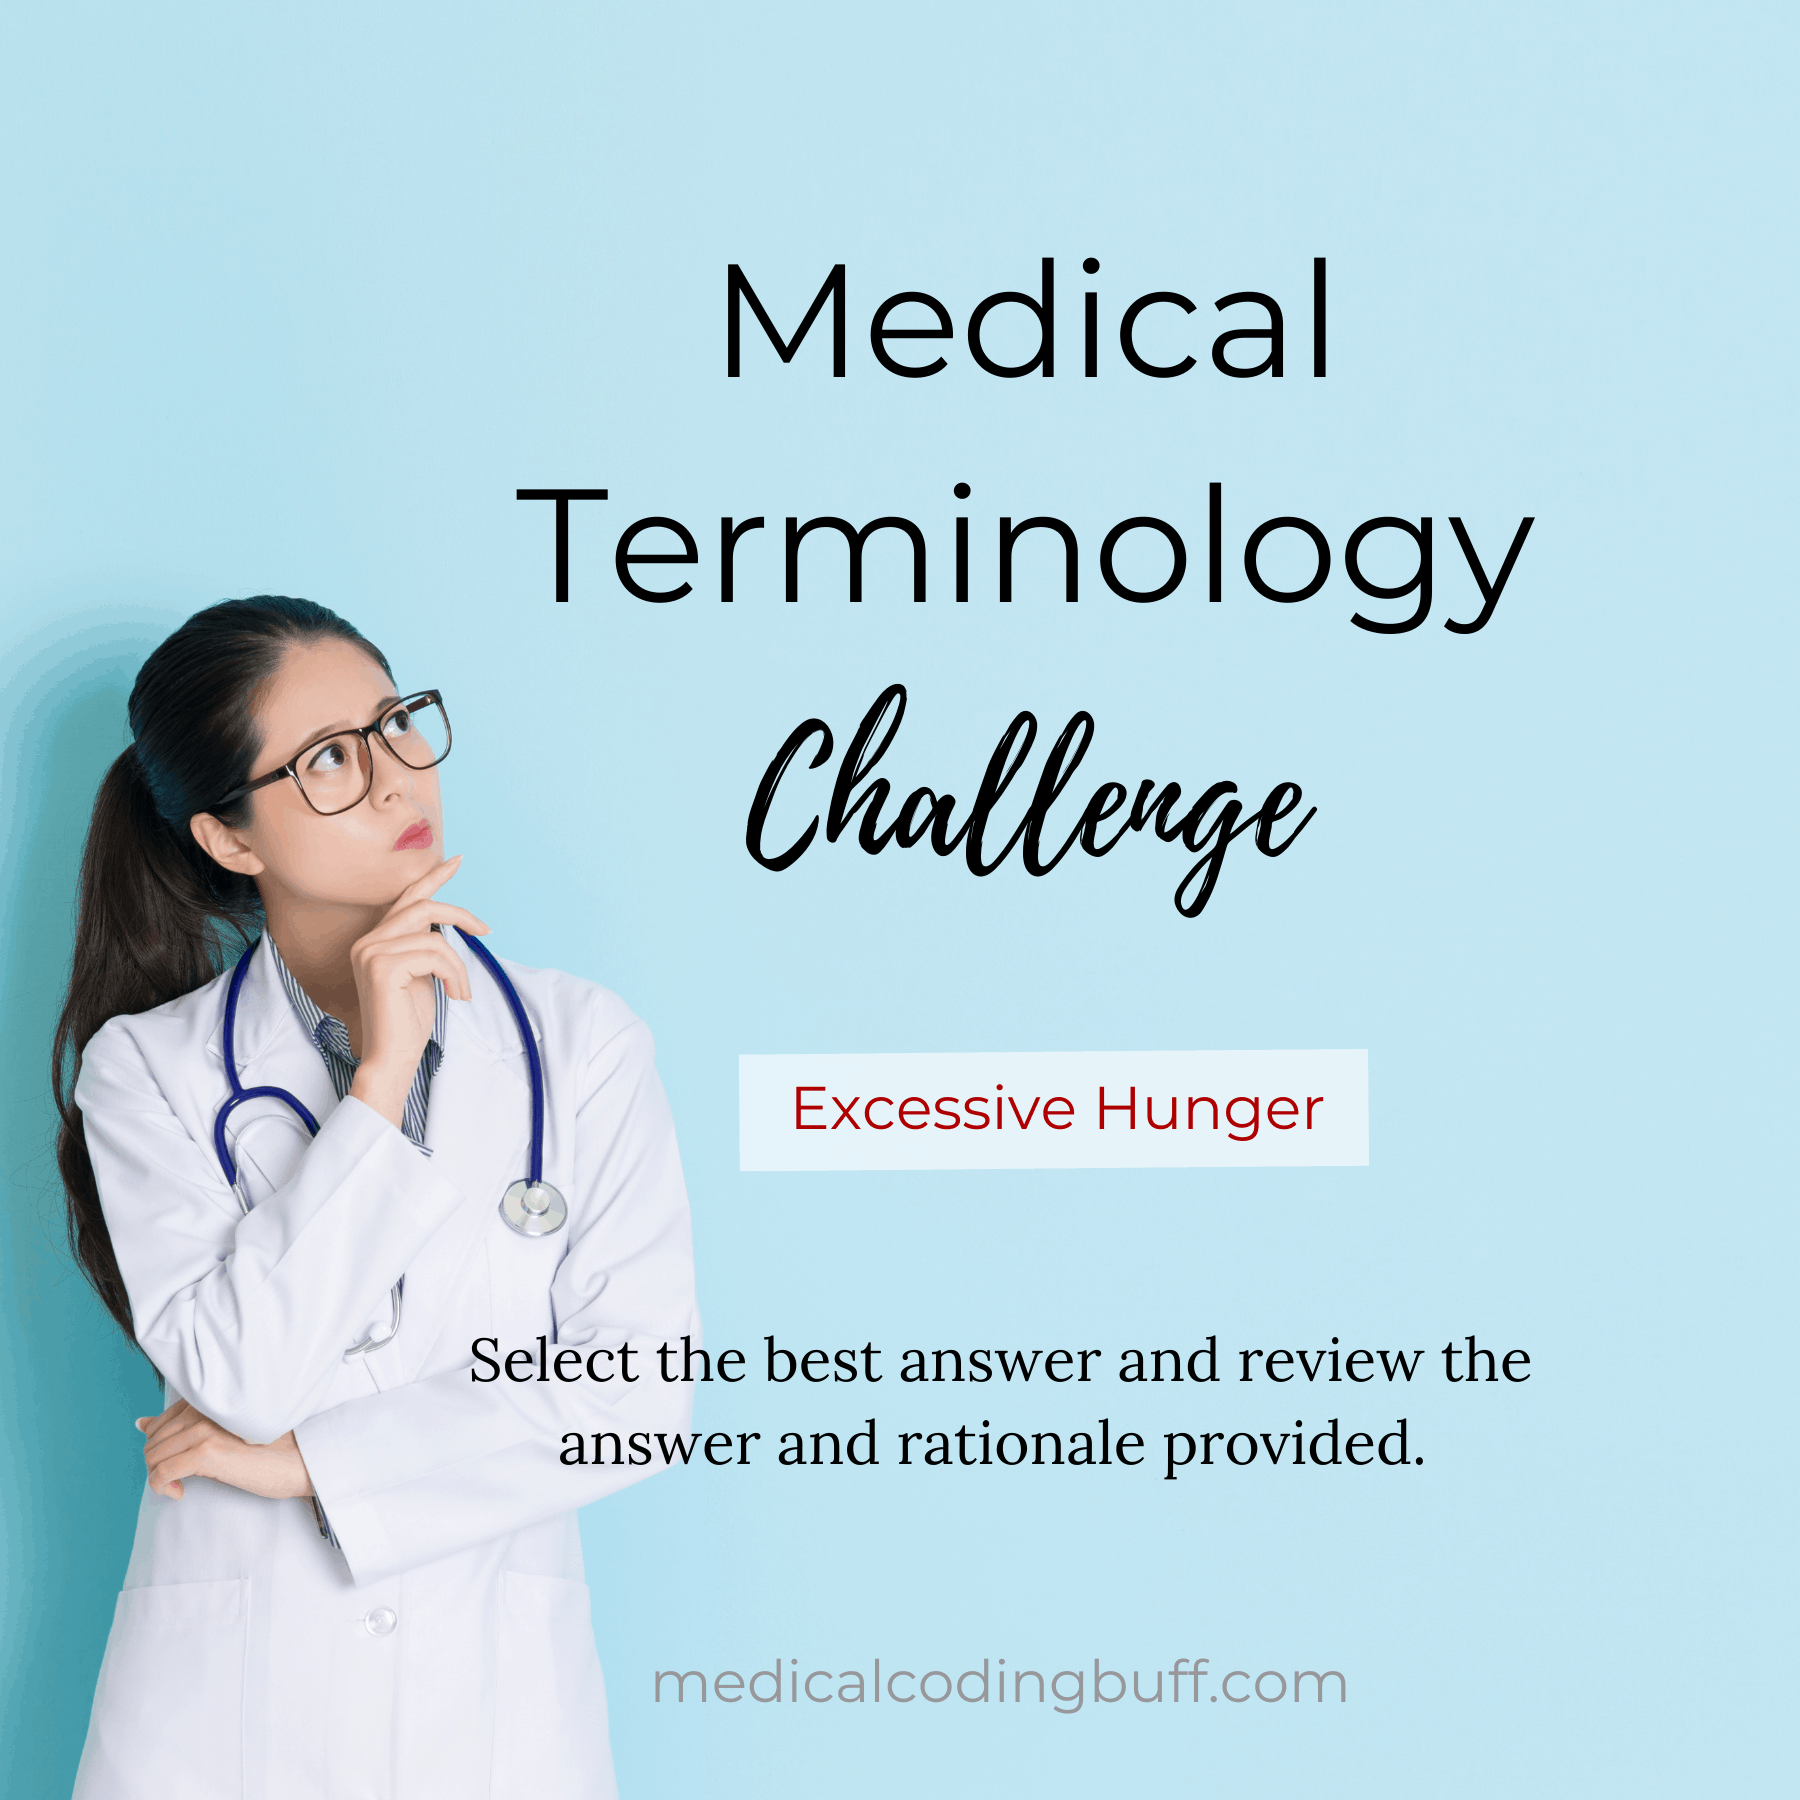 Medical Terminology Challenge: Excessive Hunger